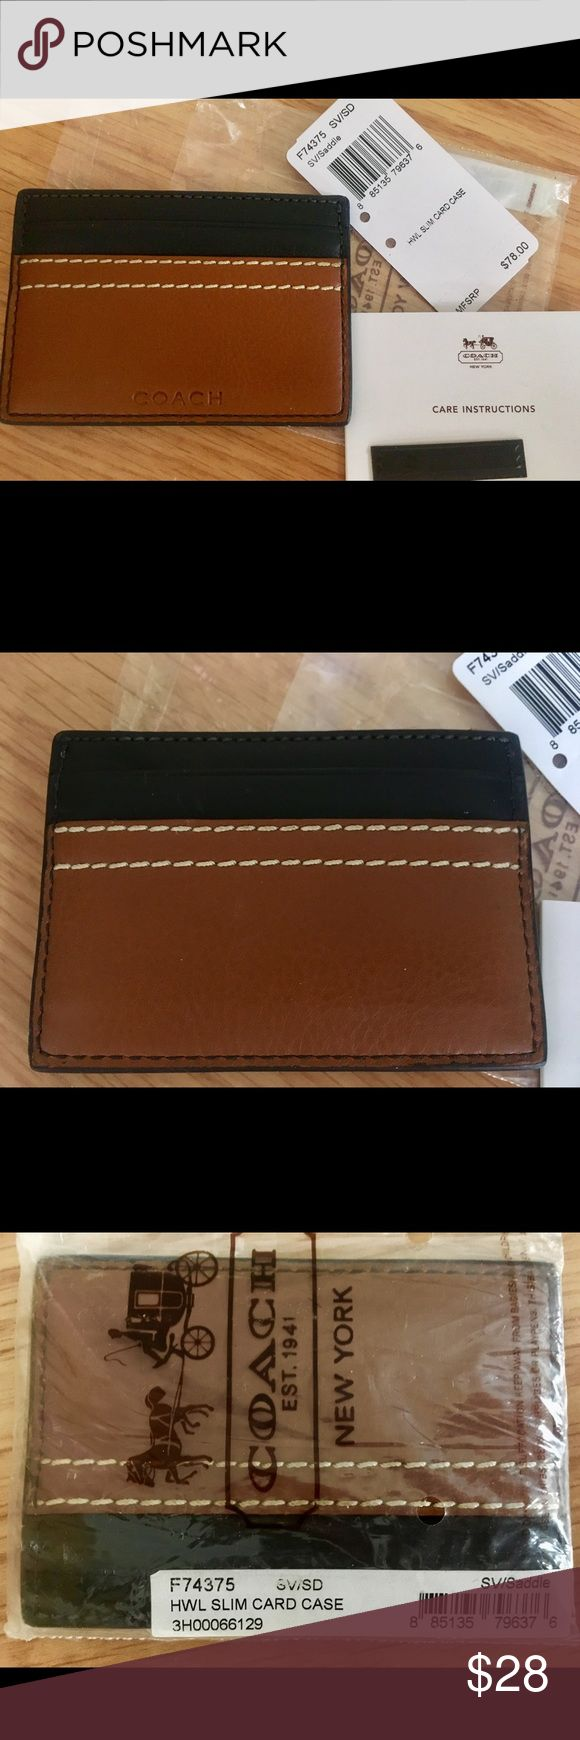 Coach BNWT business card holder leather navy brown Brand new unused Coach brown navy business card holder. Leather. Authentic. Still in plastic wrap. Comes with original tags. Priced $78. Smart looking! Coach Accessories Key & Card Holders